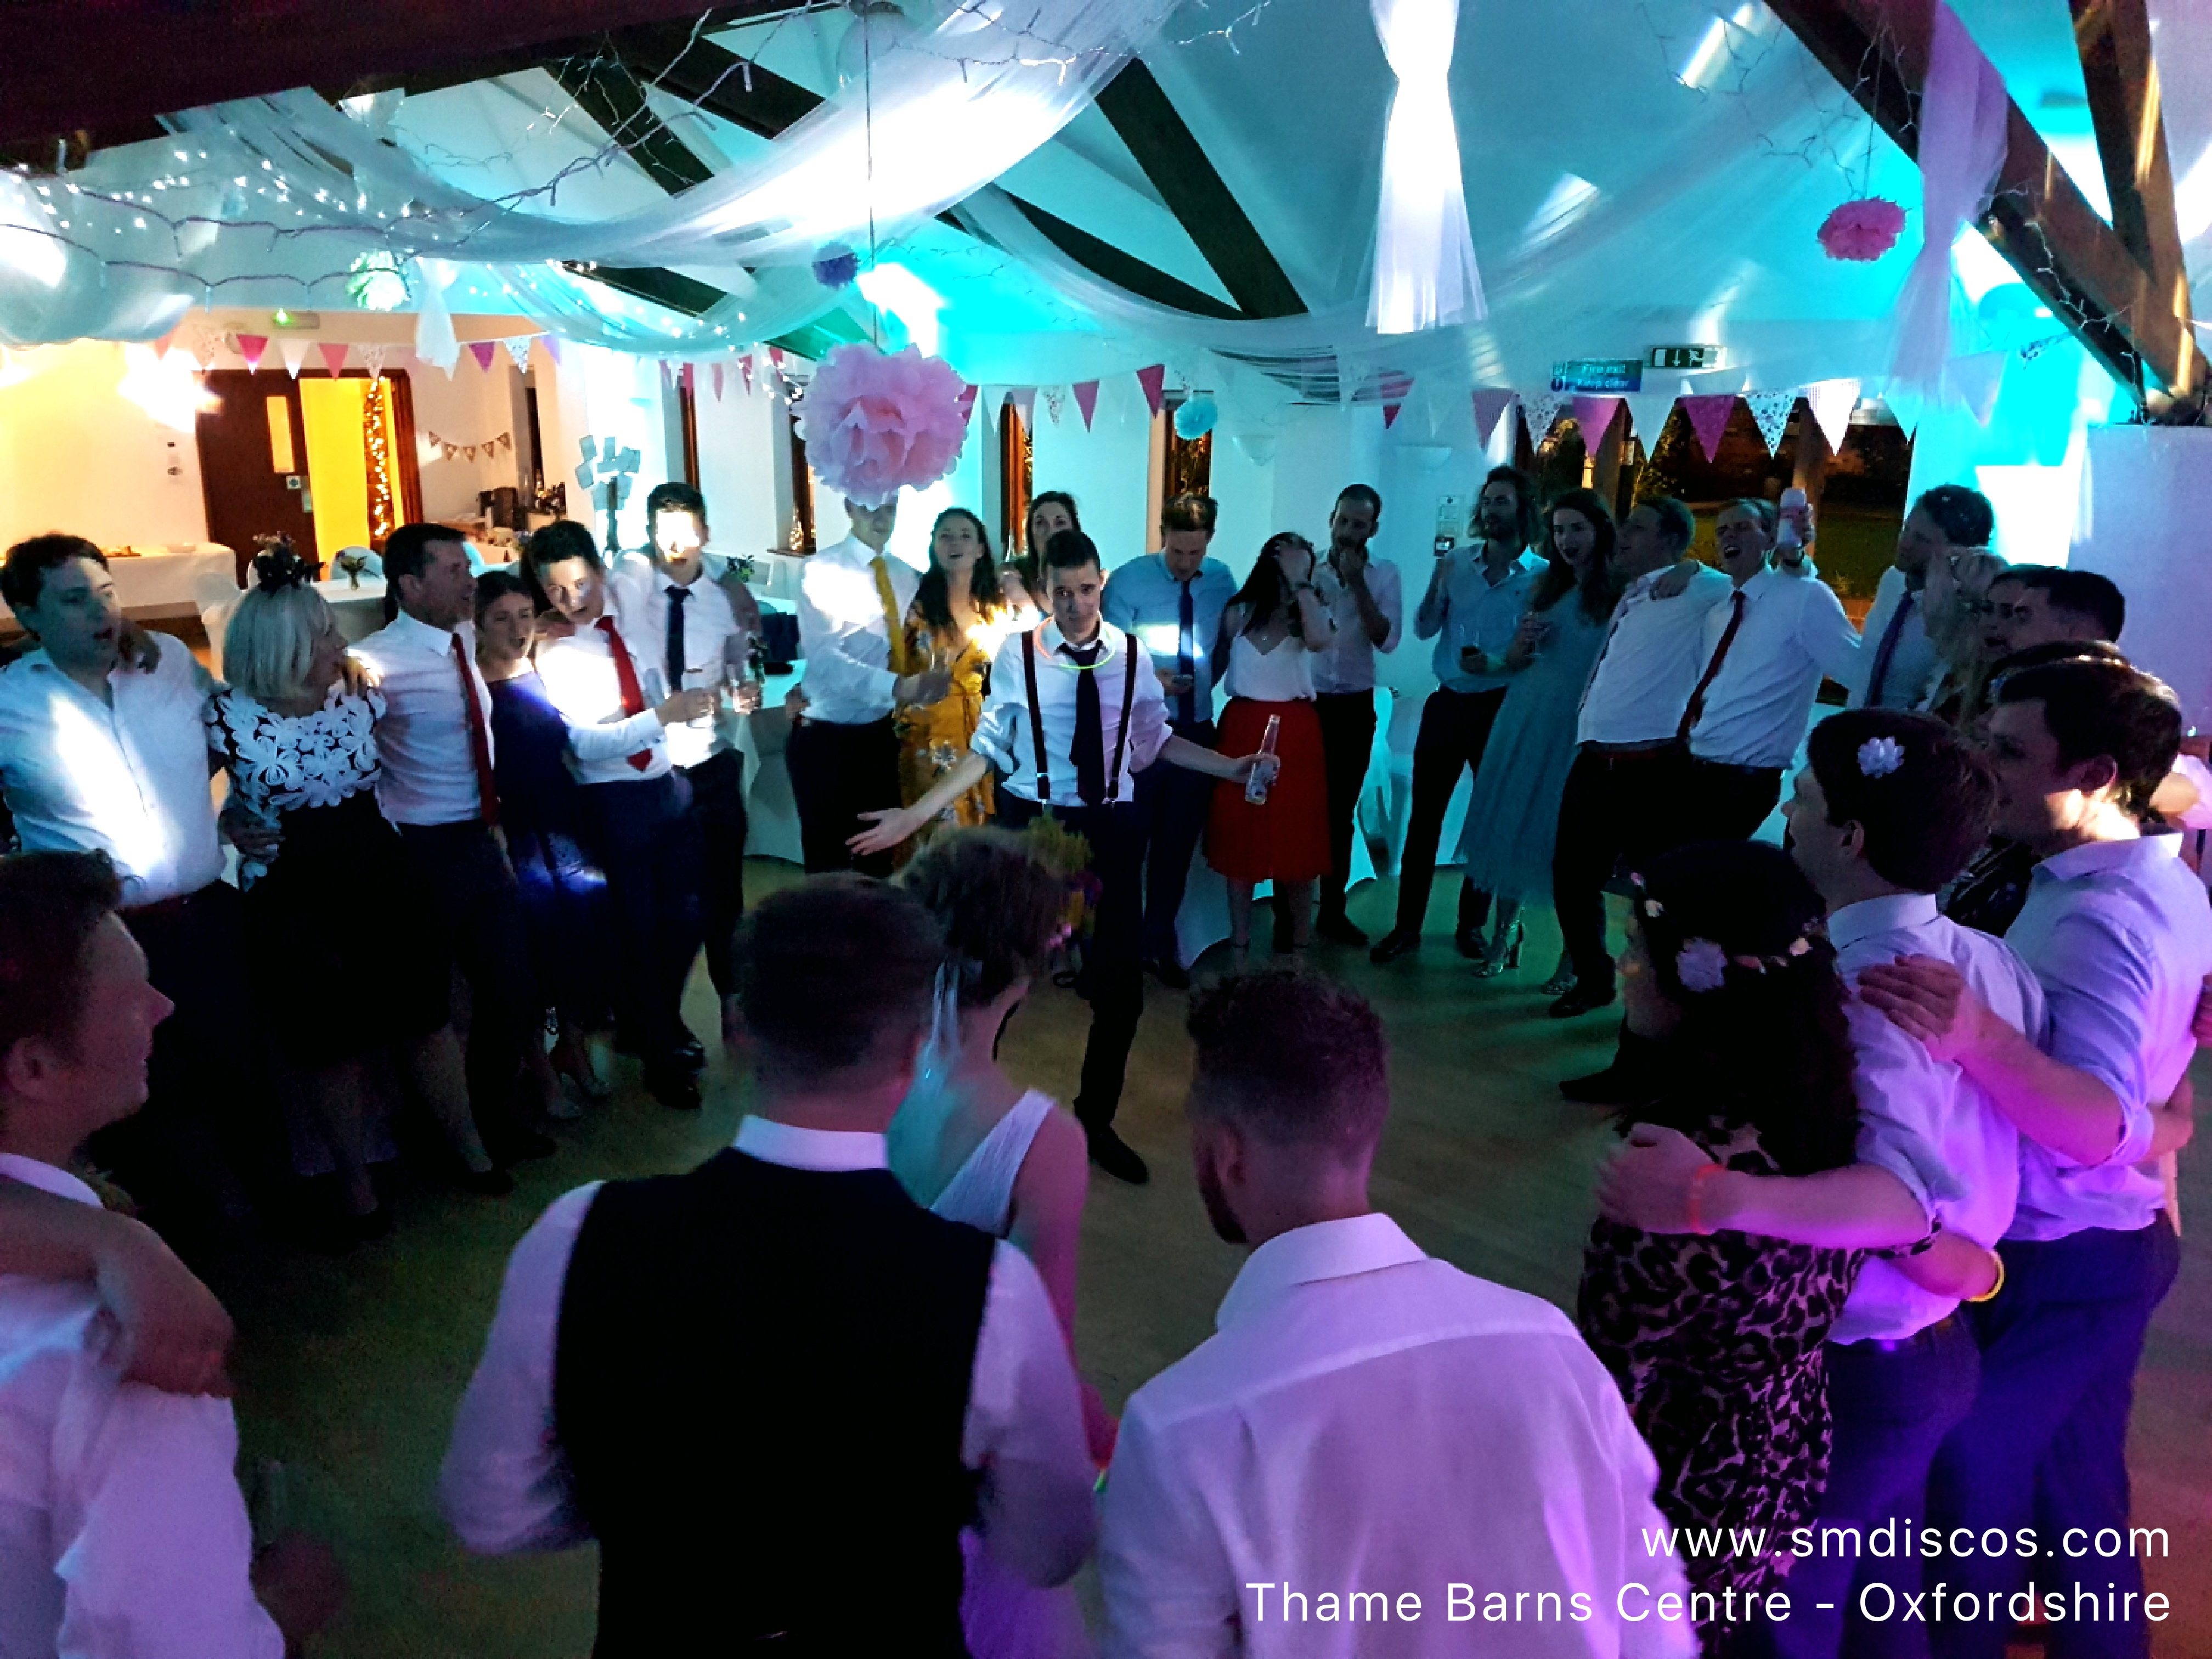 Last dance at Thame Barns Centre